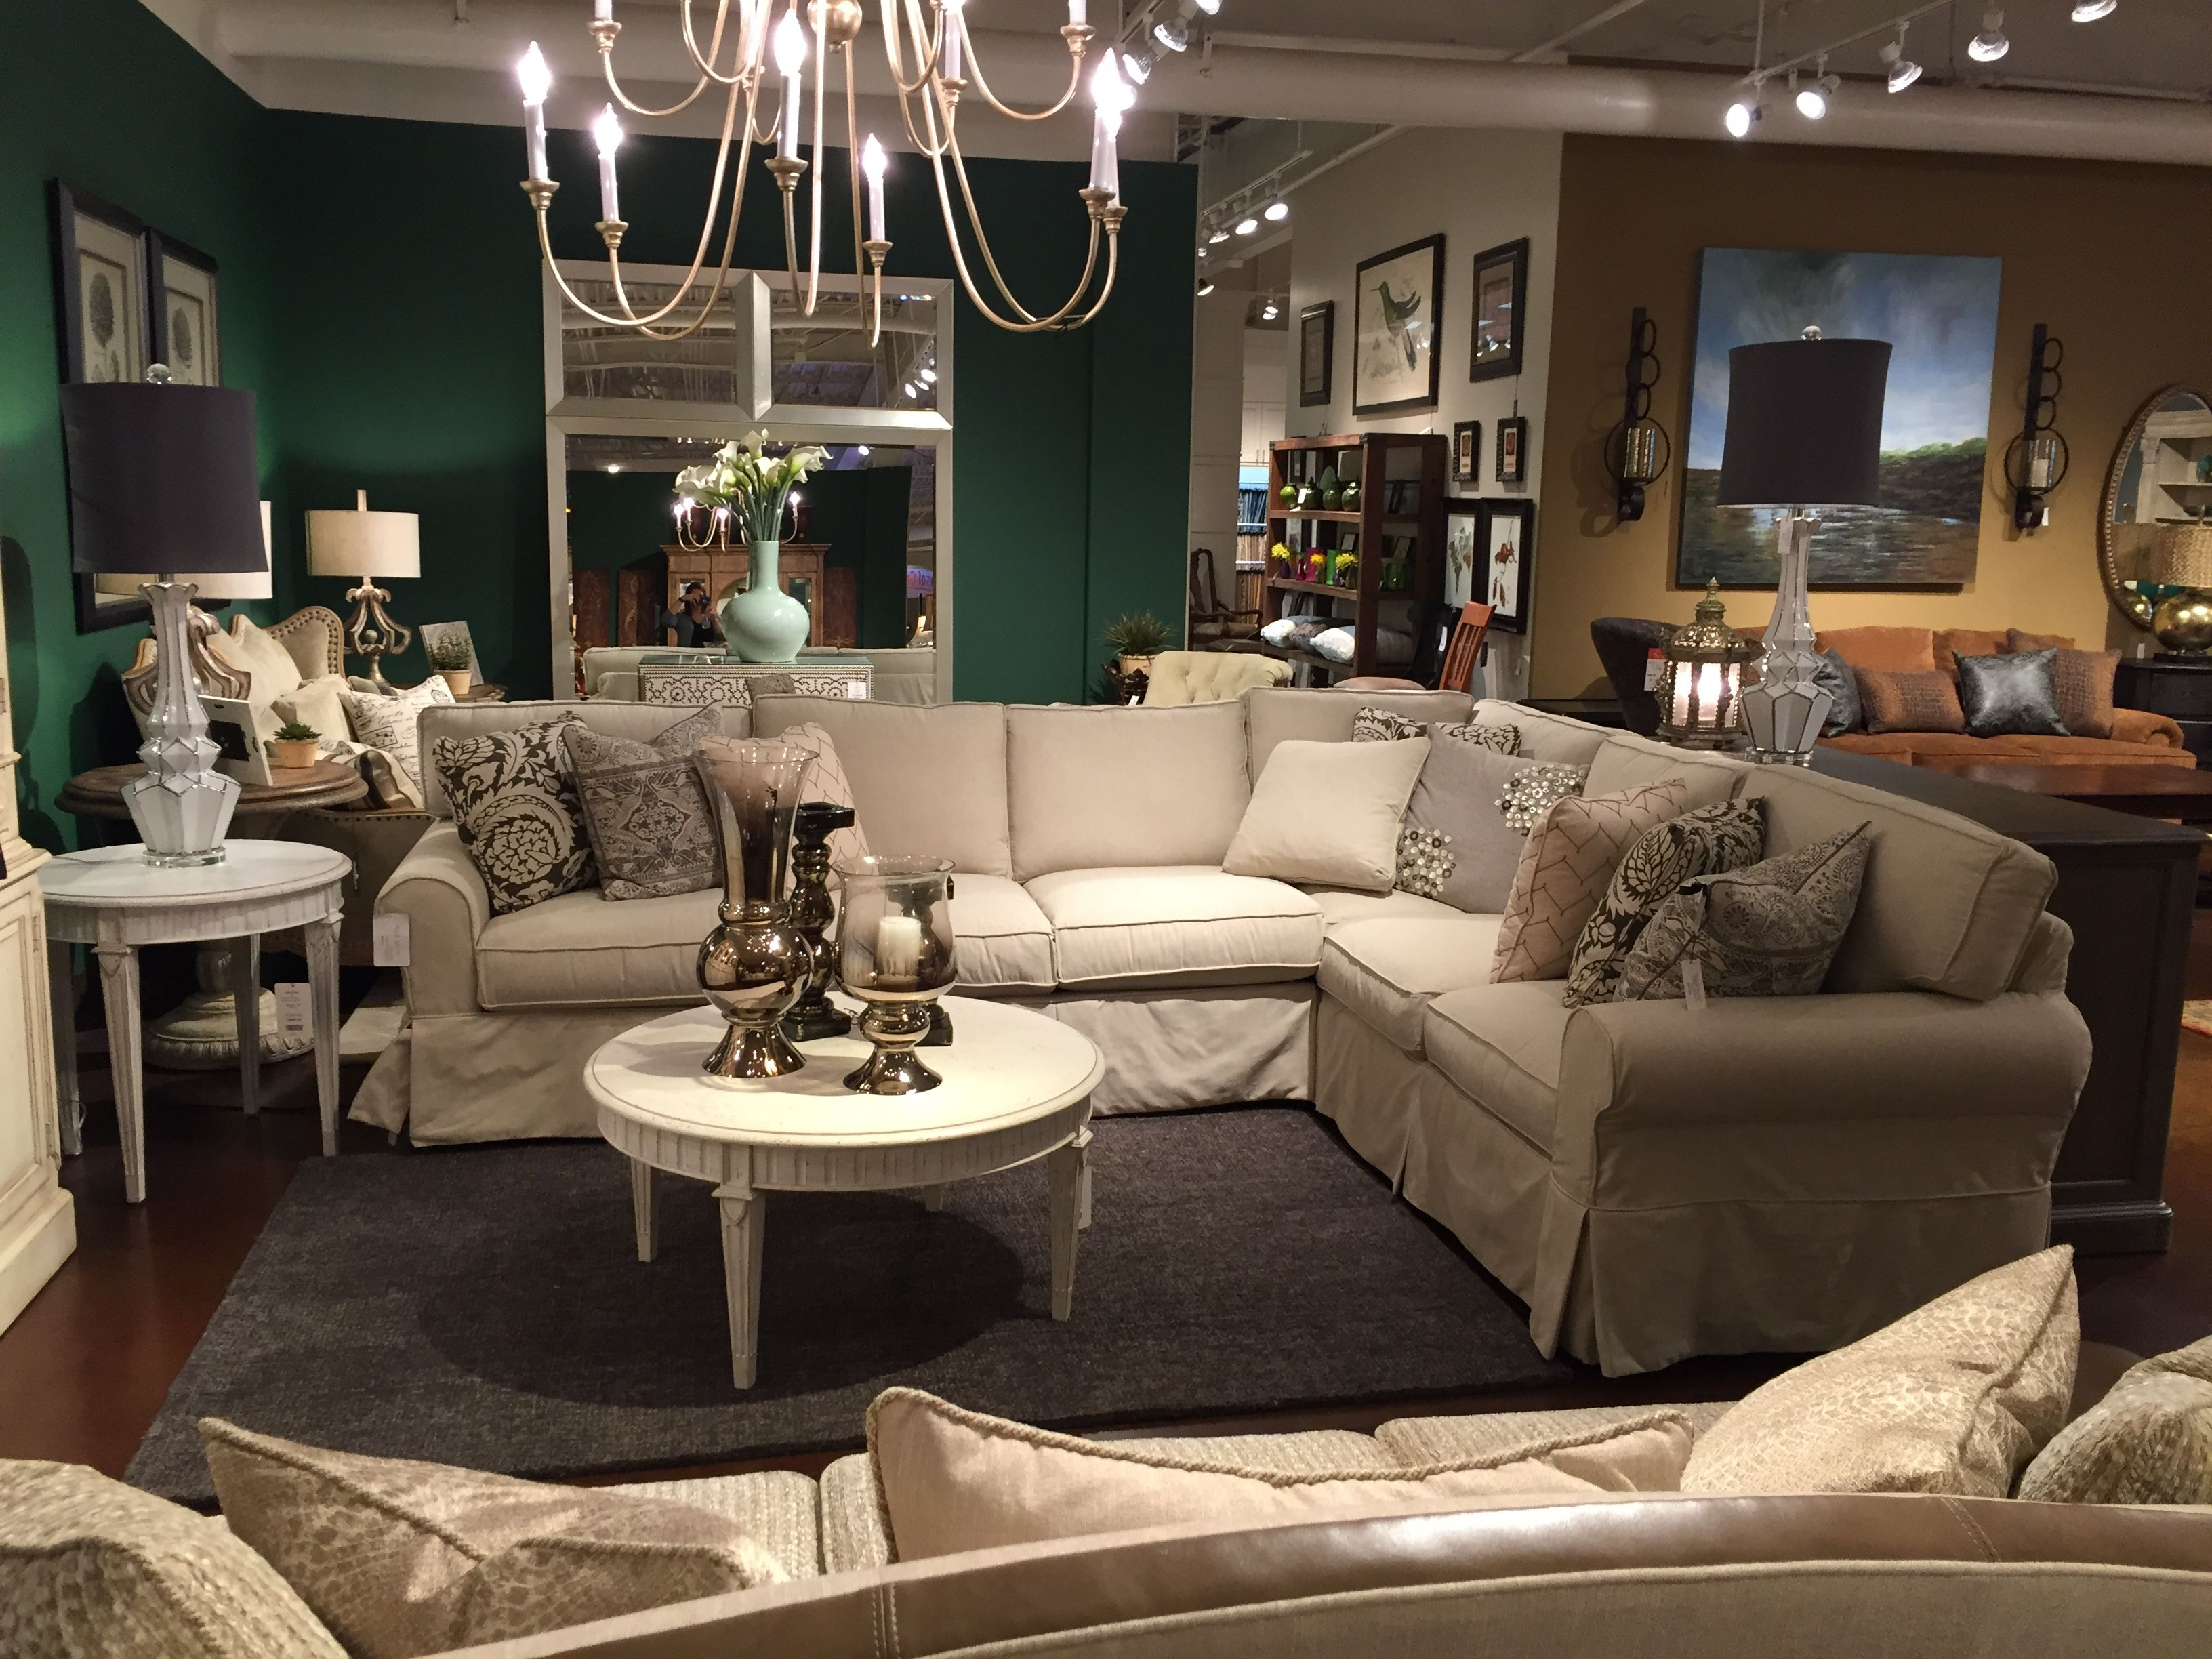 Recently Purchased Sectional By Paula Deen For Craft Master Natural Fabric Called Guest List